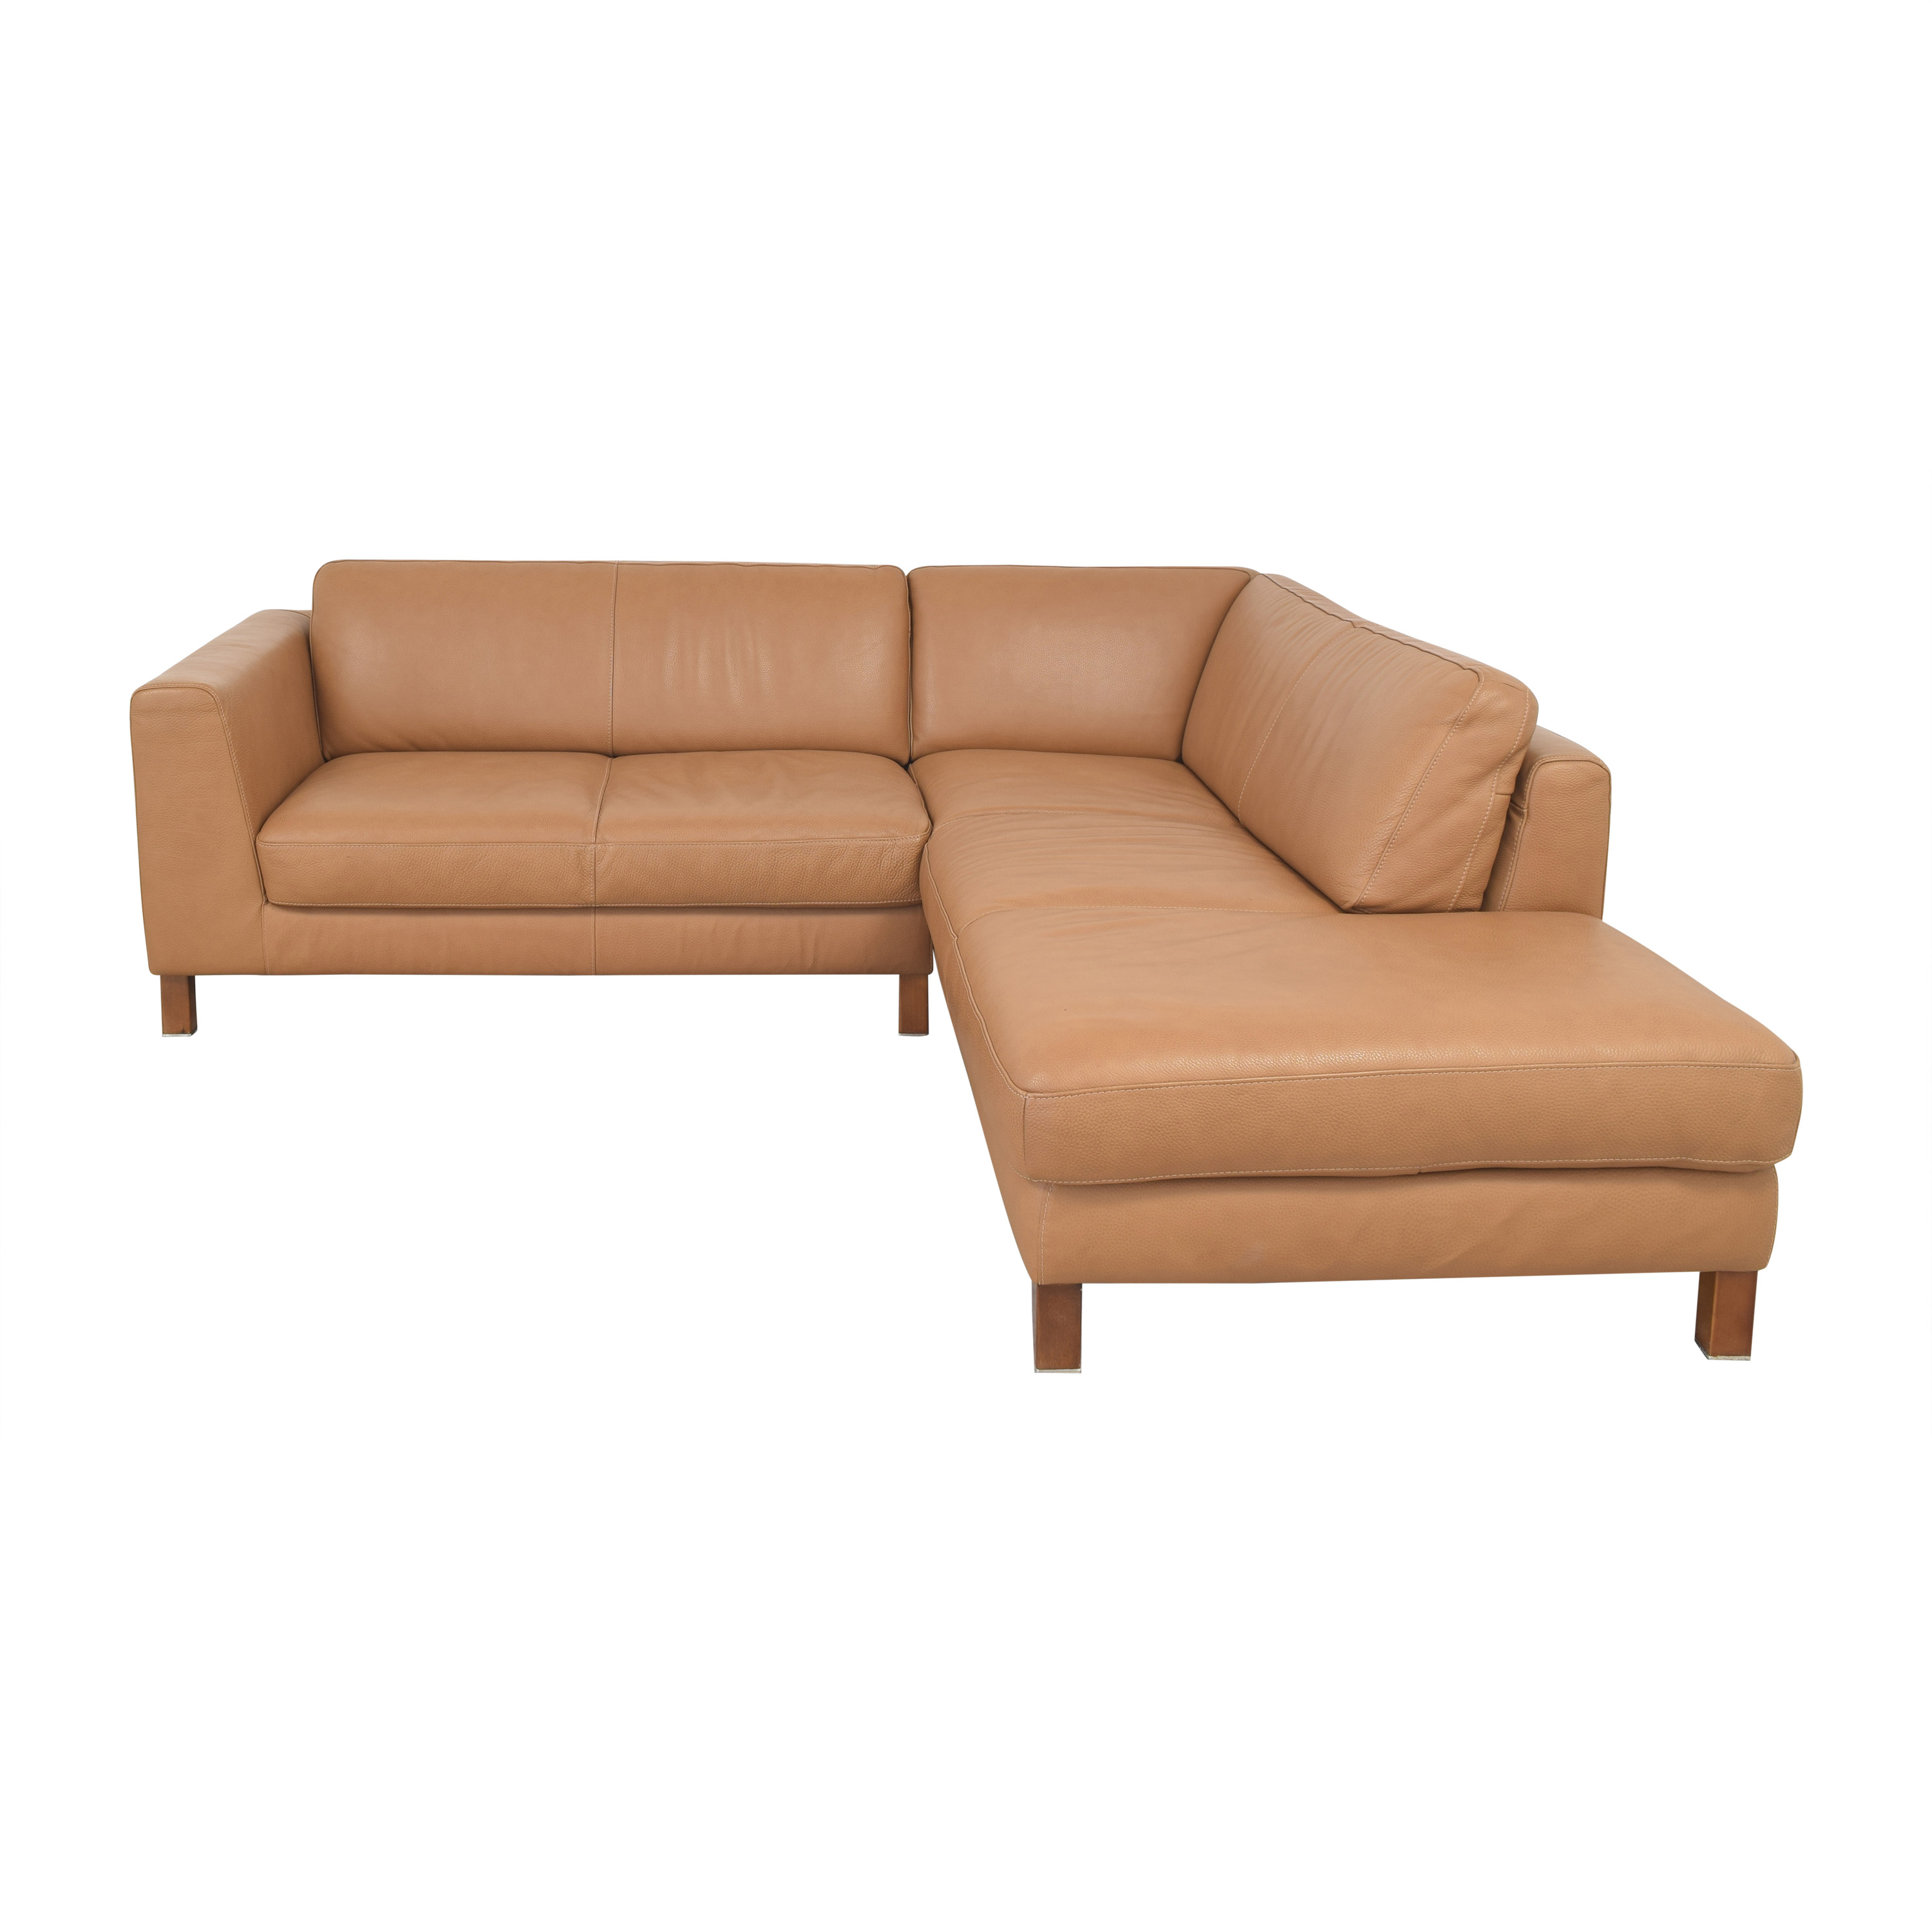 Bloomingdale's Bloomingdale's Sectional Sofa with Chaise on sale